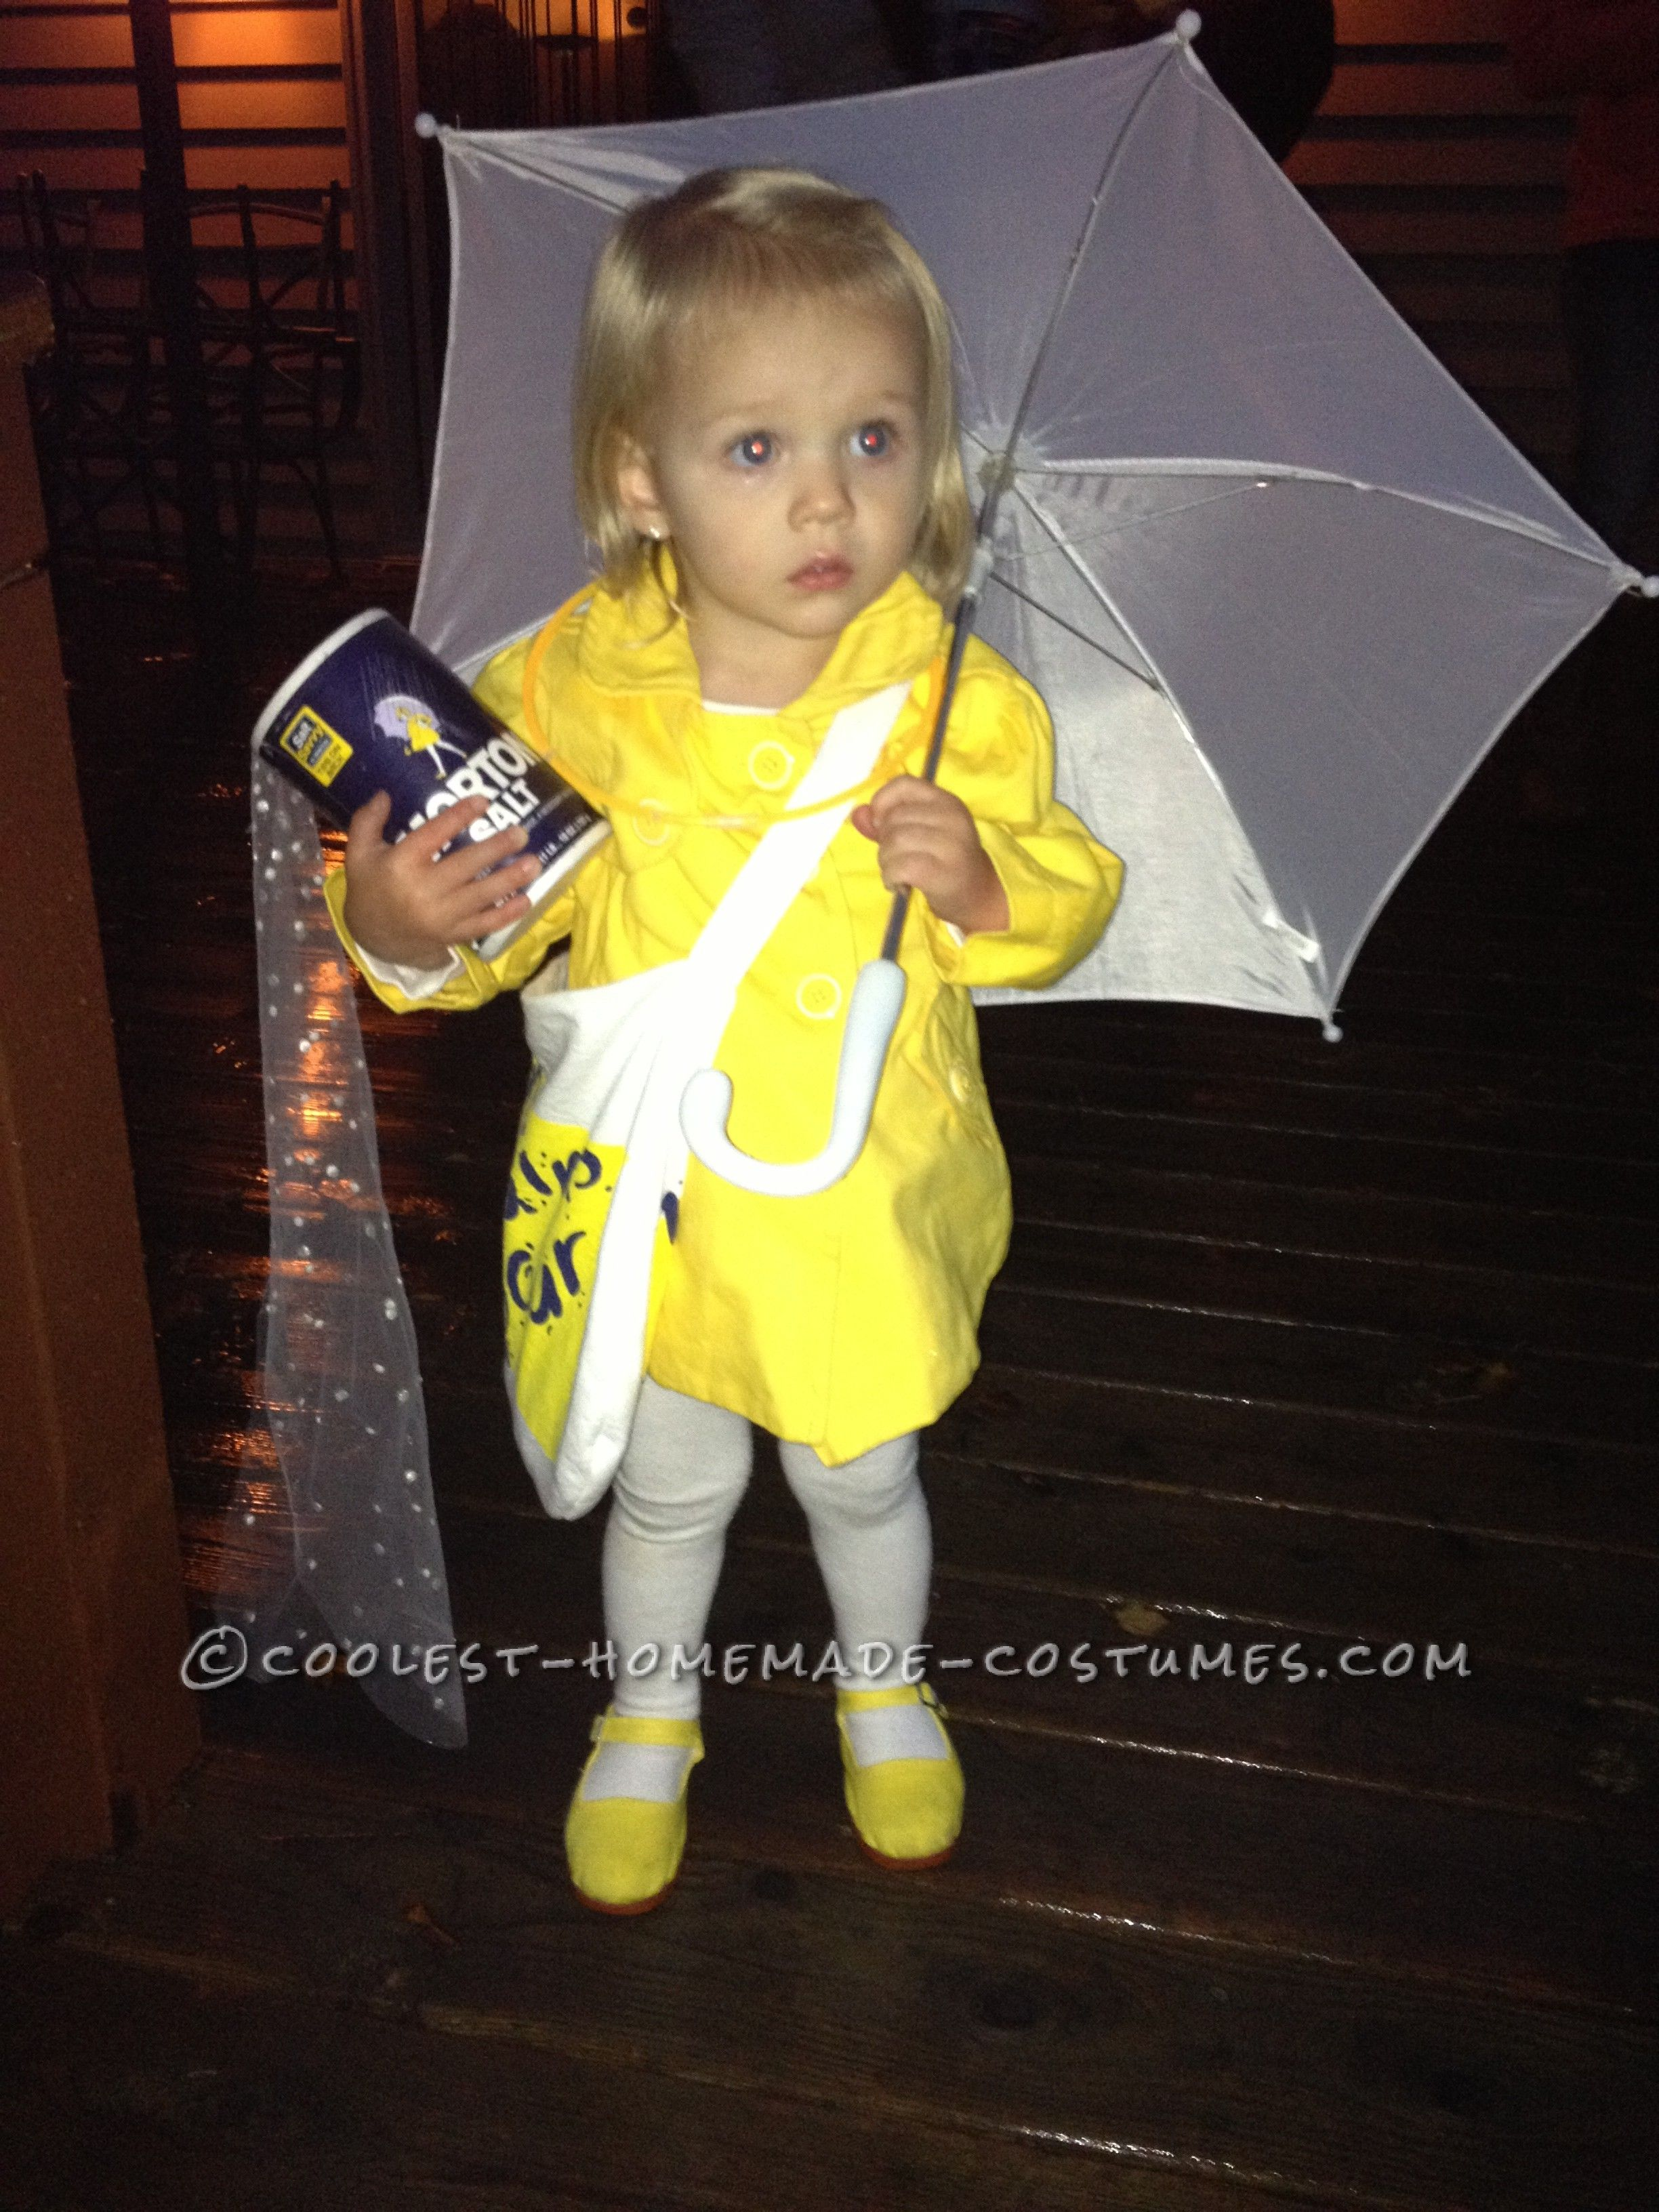 Cutest Little Morton Salt Girl Halloween Toddler Costumeu2026 Coolest Halloween Costume Contest  sc 1 st  Pinterest & Cutest Little Morton Salt Girl Halloween Toddler Costume | Pinterest ...